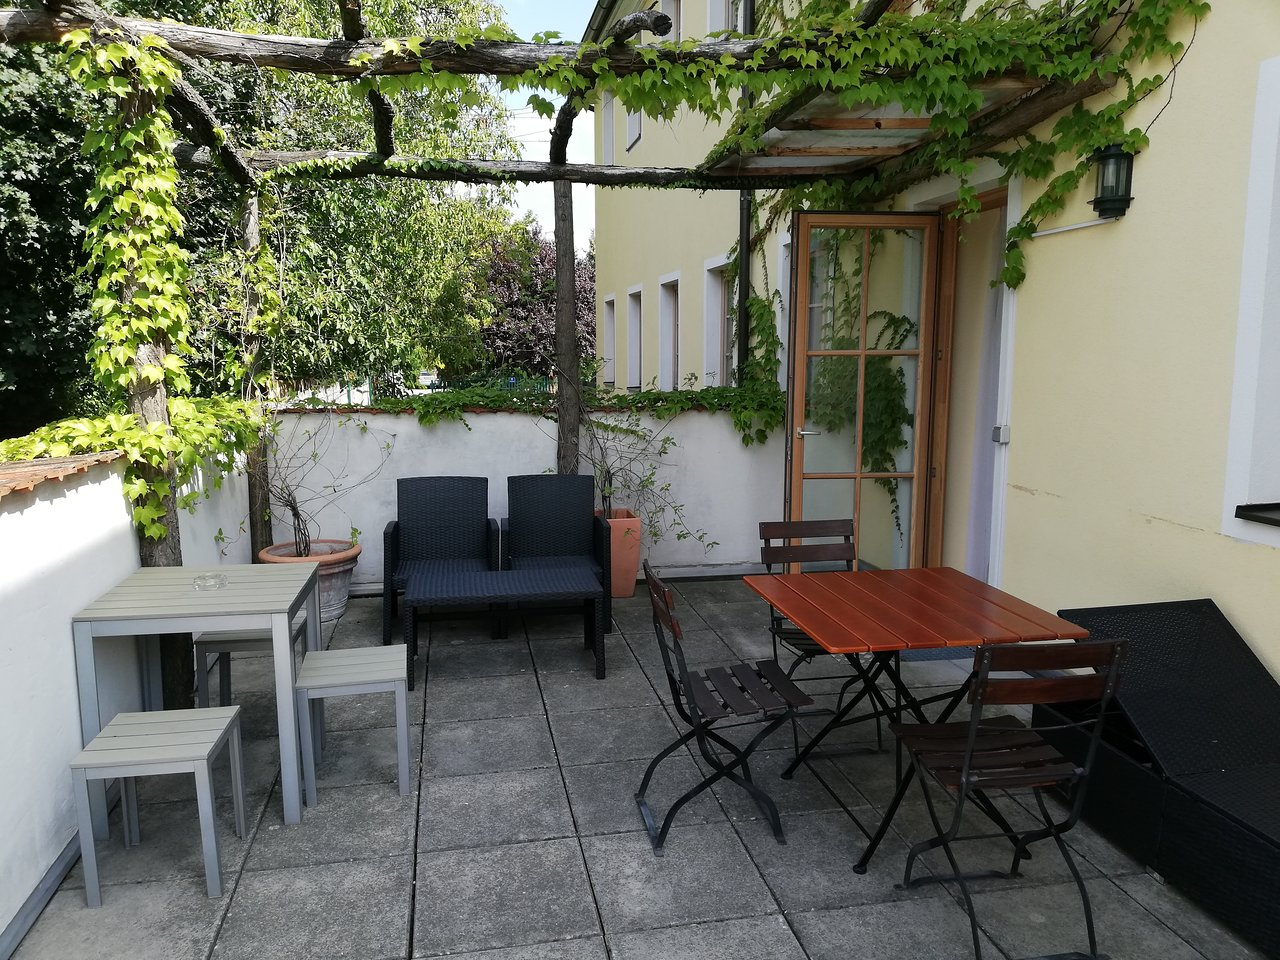 Pizzeria La Terrasse Antony Ad Vineas Gastehaus Nikolaihof Guesthouse Reviews Price